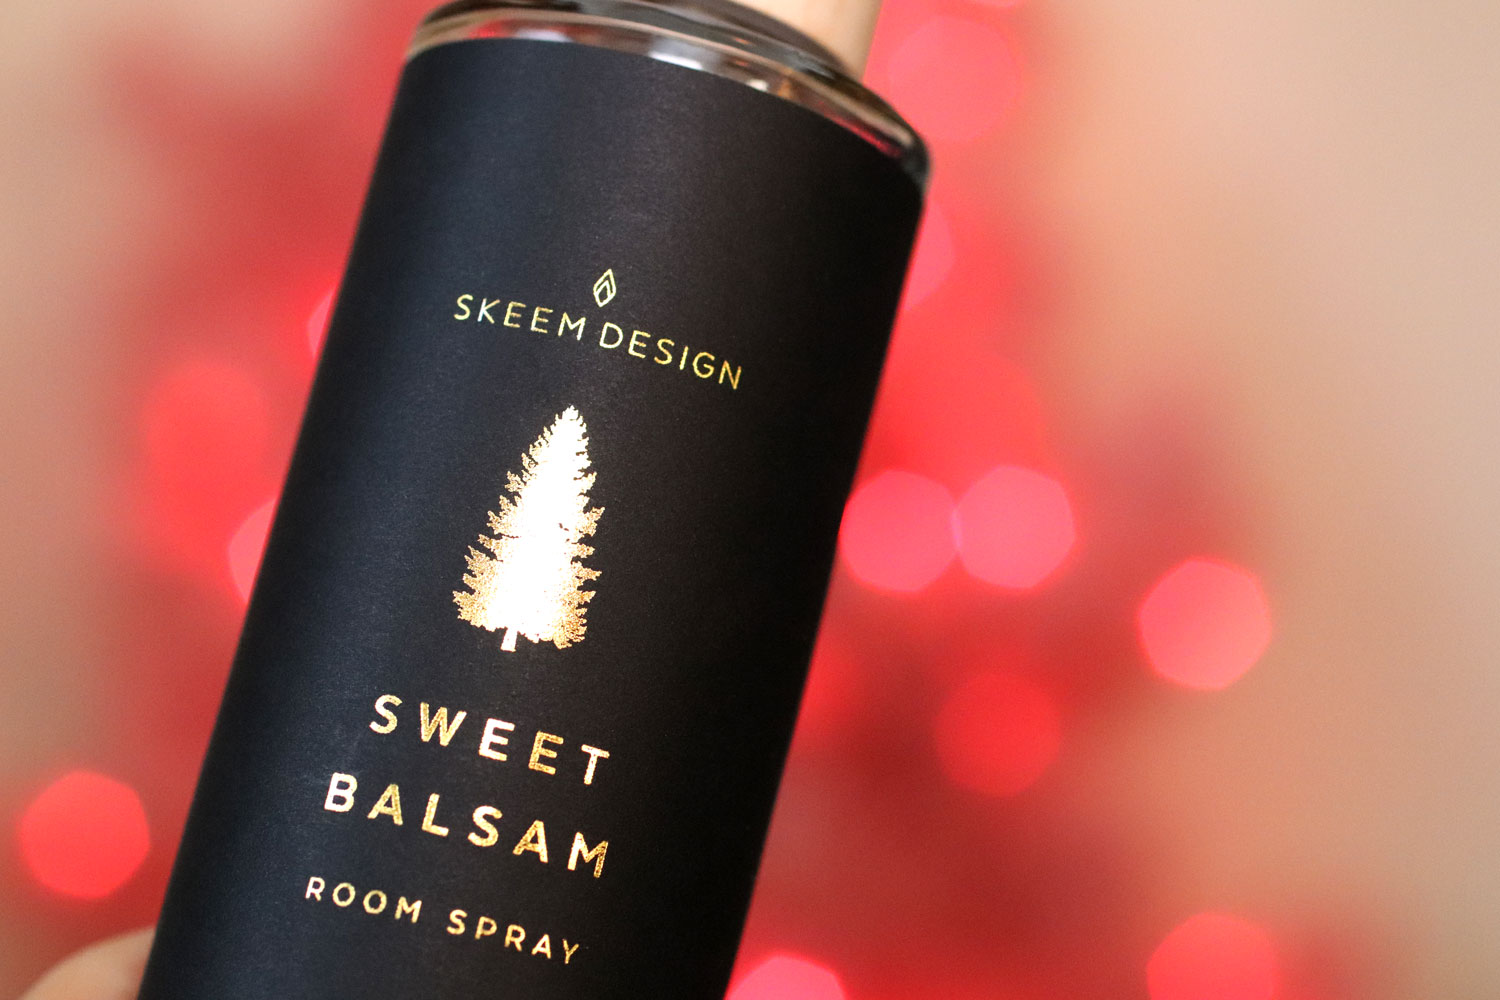 Woman Owned Holiday Gift Guide 2019 - Skeem Design Sweet Balsam Room Spray